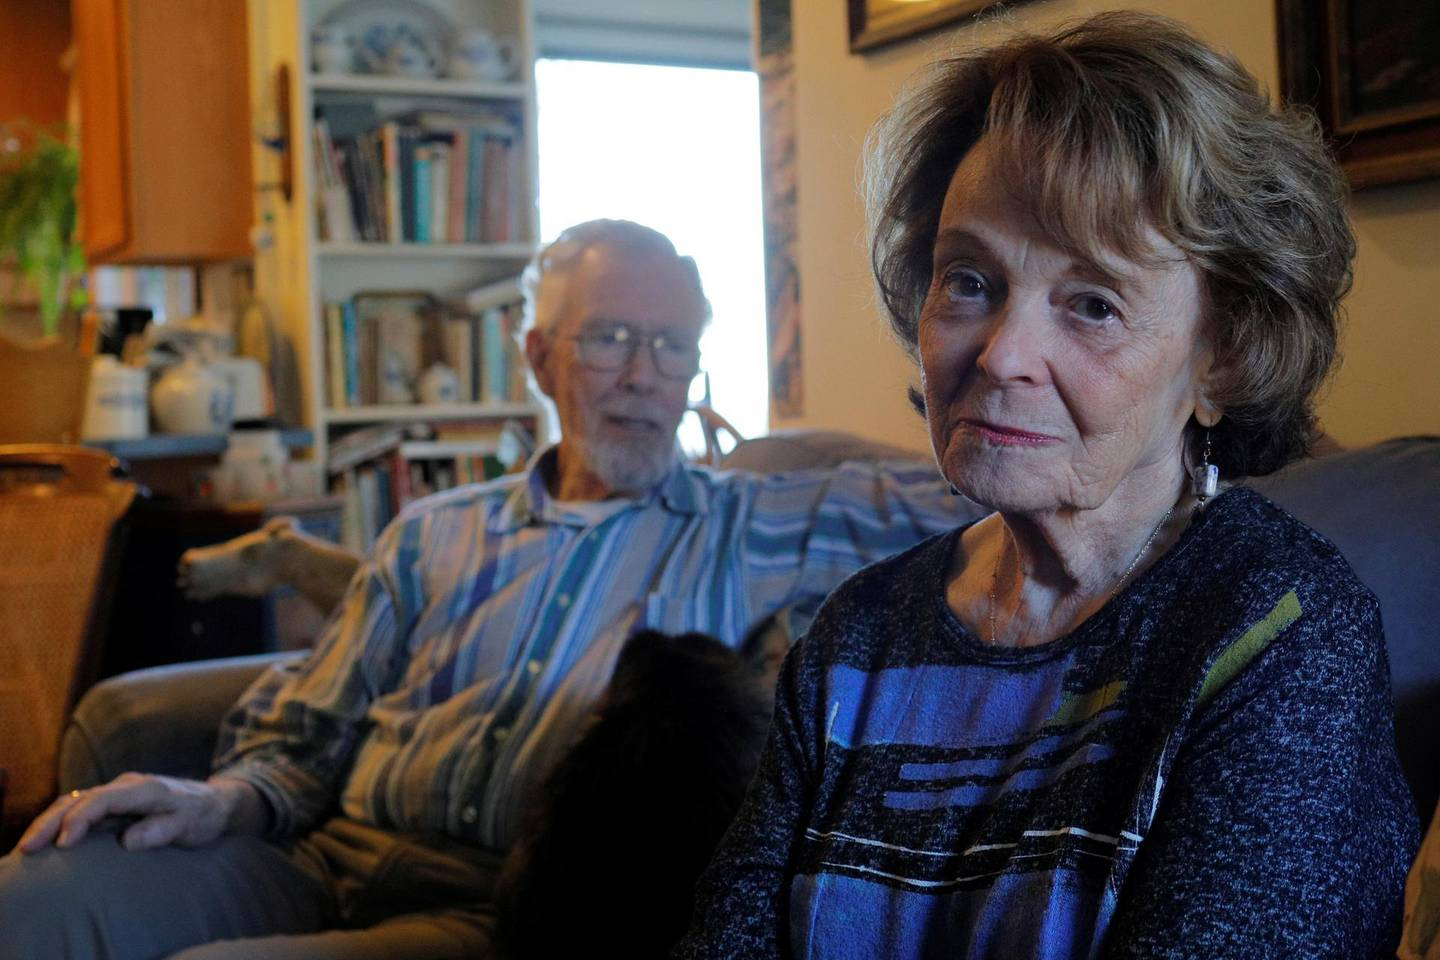 Cynthia Flagg (R) sits with her husband Charles, who took part in an early stage trial of Biogen's drug Aducanumab following his diagnosis with Alzheimer's disease, at their home in Jamestown, Rhode Island, U.S., February 21, 2020.  On June 7, 2021 the U.S. Food and Drug Administration (FDA) approved Aduhelm (aducanumab) as the first treatment to target a likely underlying cause of Alzheimer's disease - sticky deposits of a protein called amyloid beta.  Picture taken February 21, 2020.    REUTERS/Brian Snyder